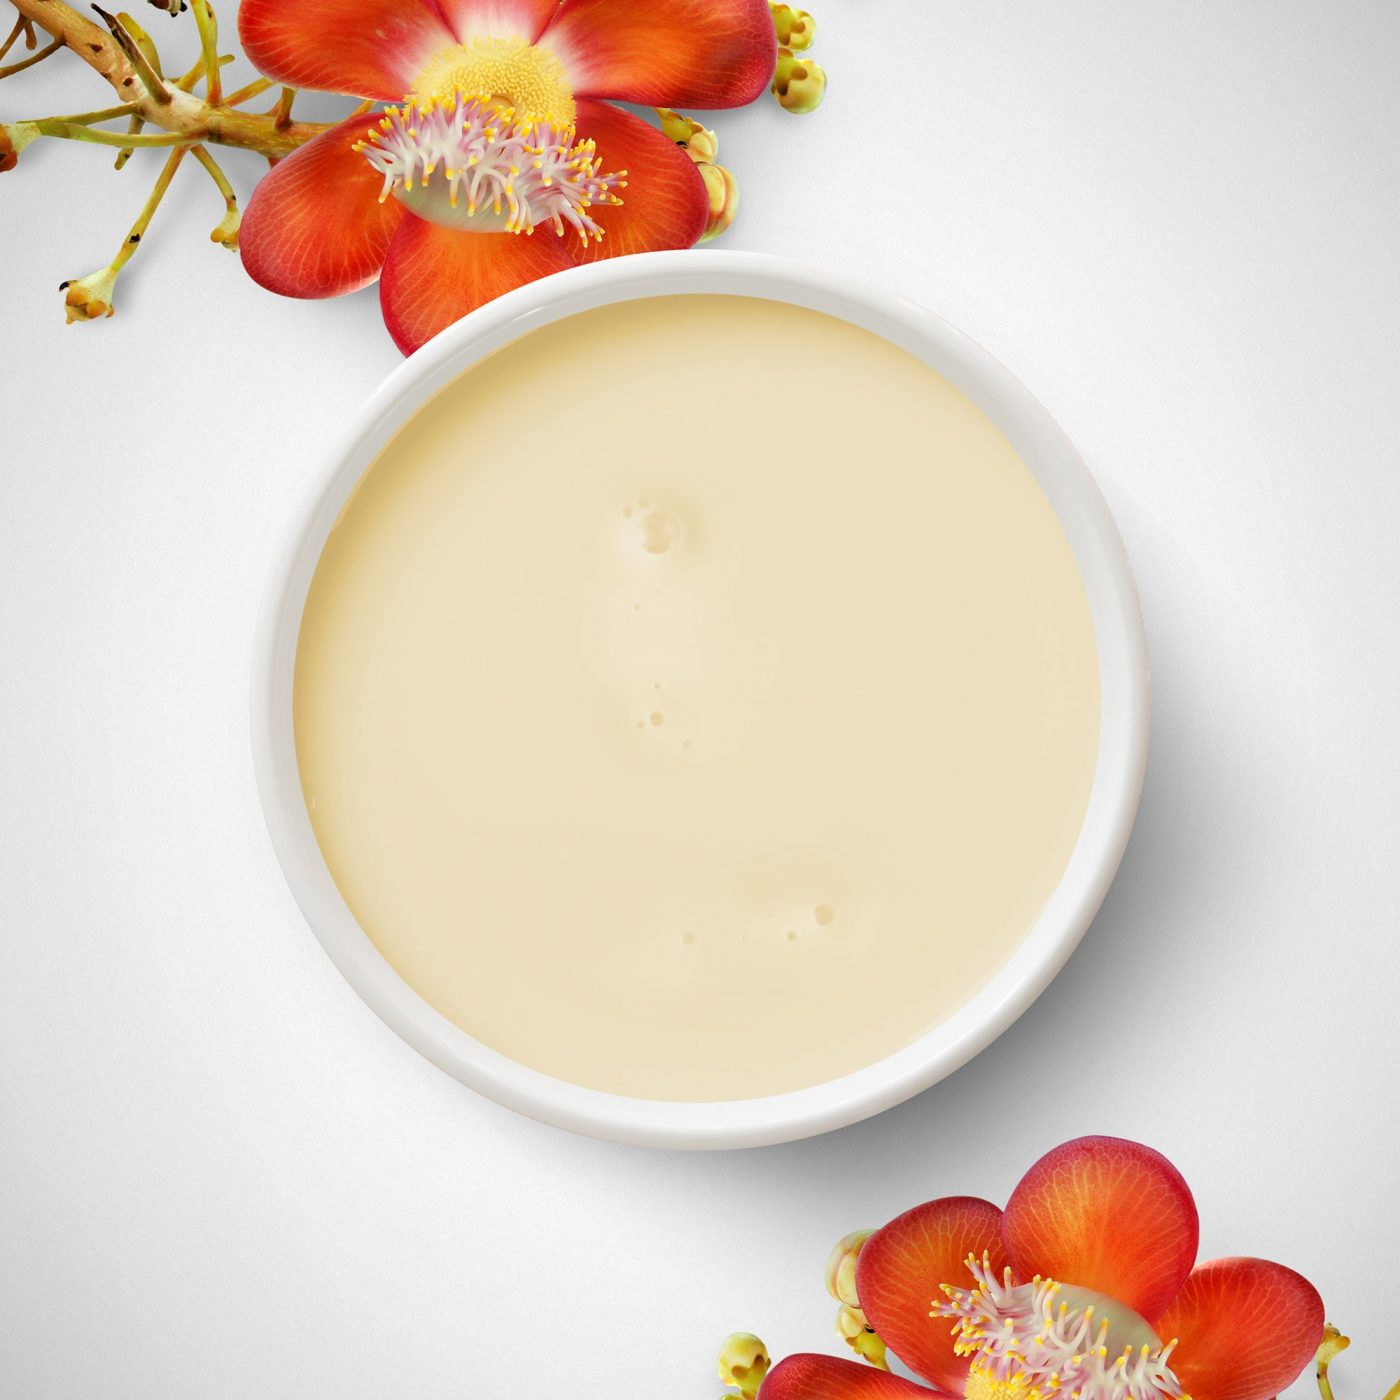 Small bowl with creamy product on a white background and red flowers on the edge.